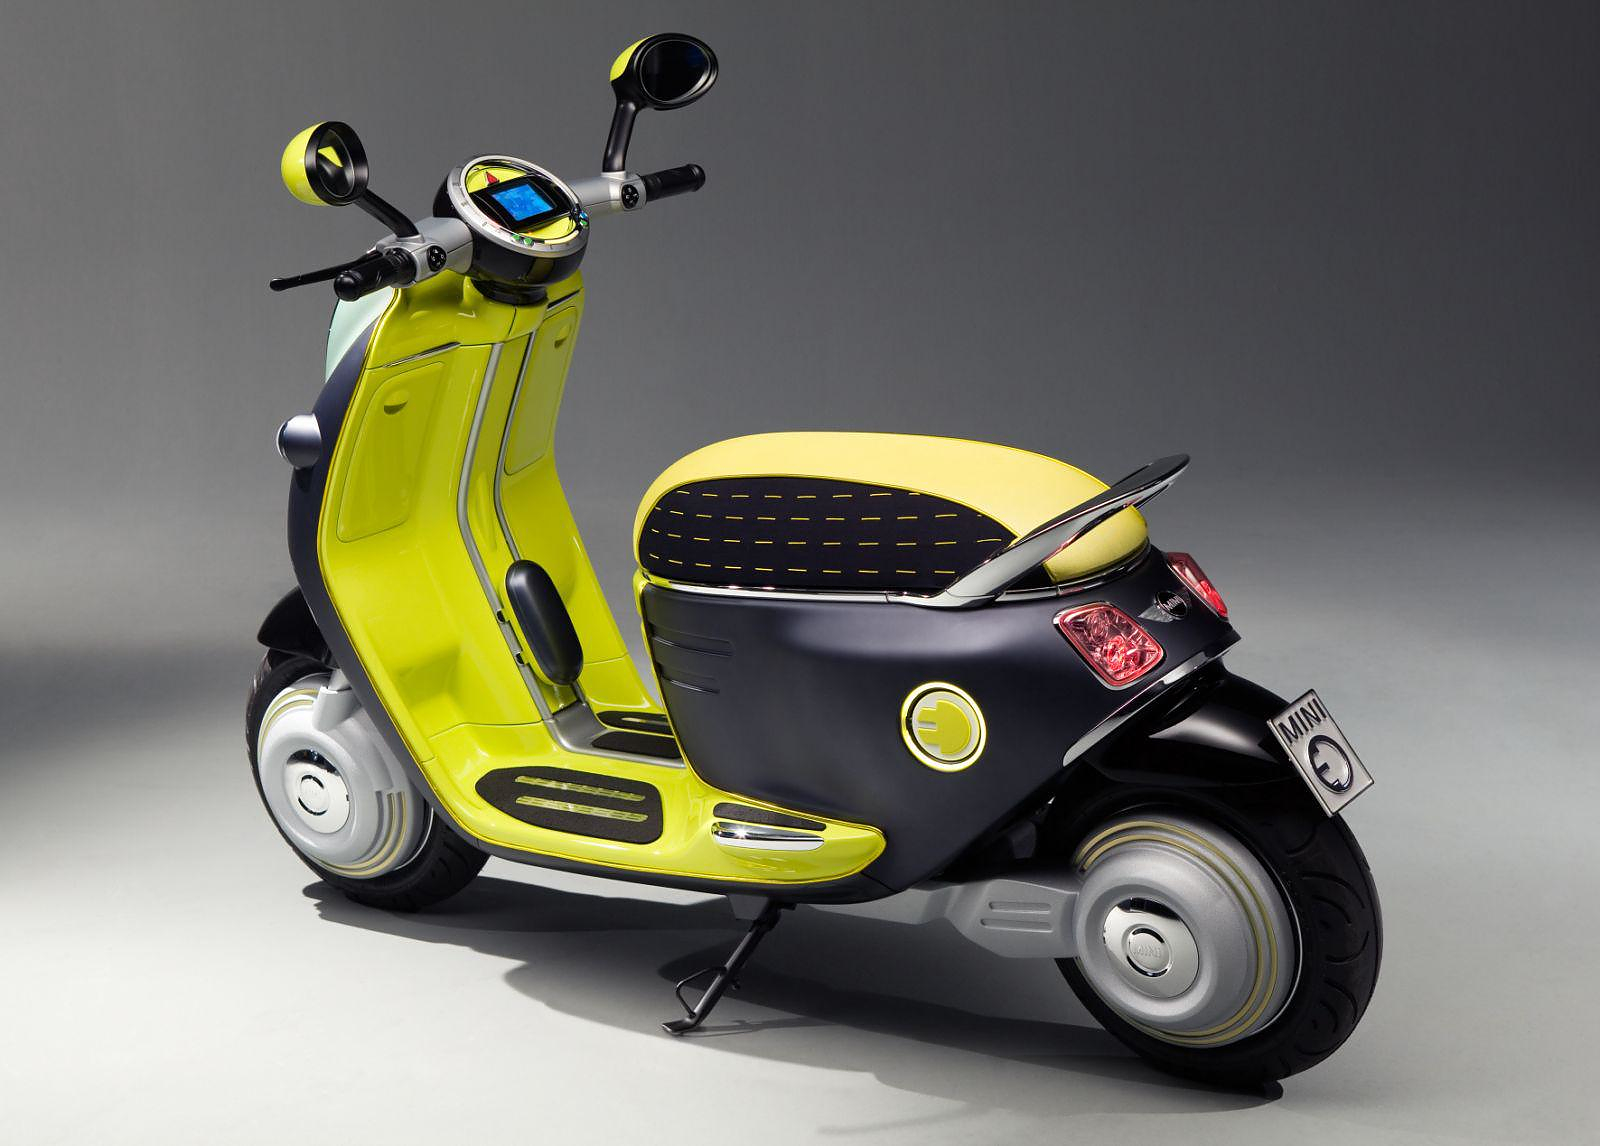 MINI Scooter E Concept, Electric Scooter.